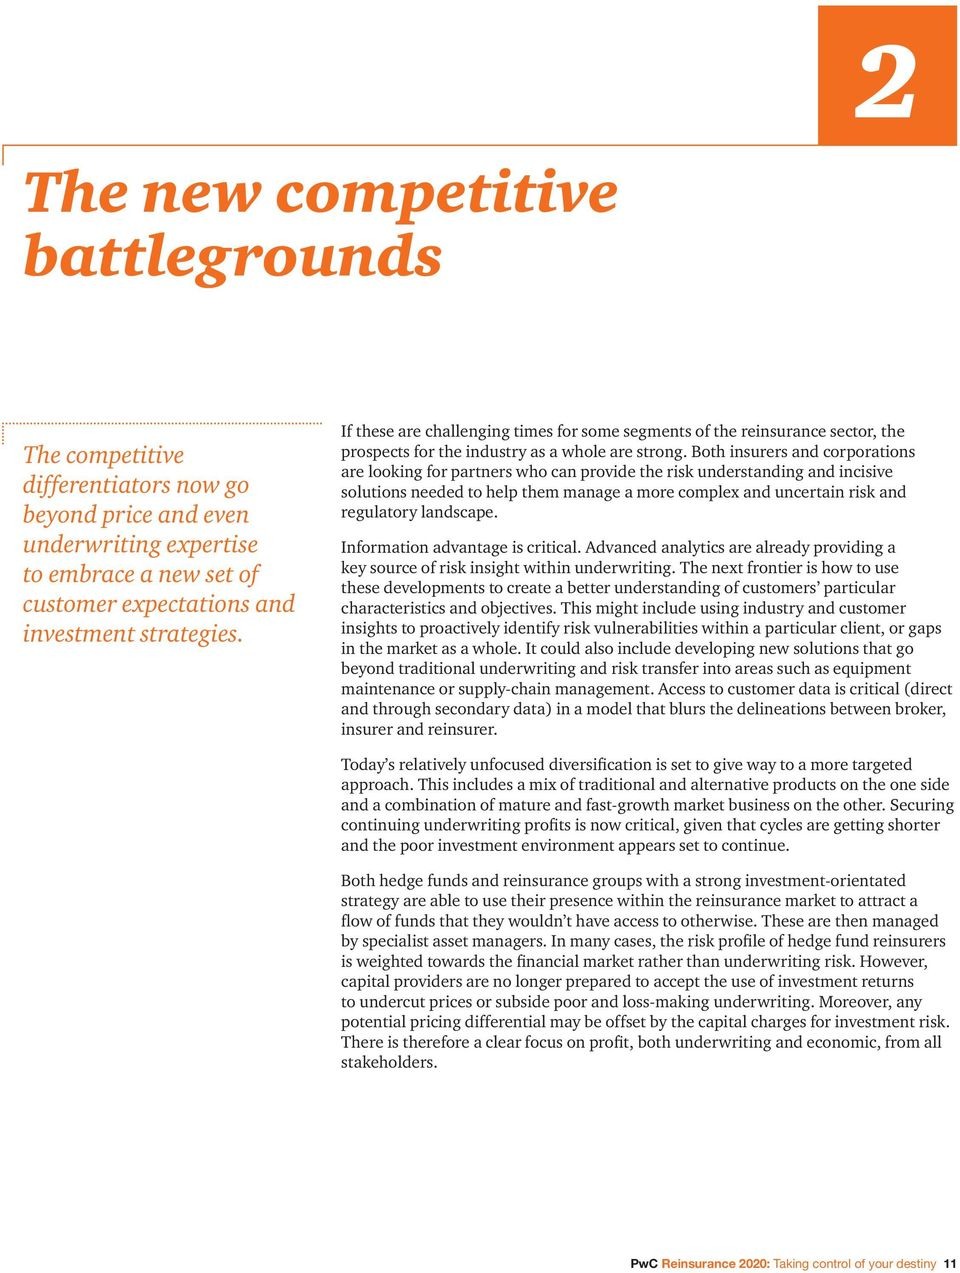 Both insurers and corporations are looking for partners who can provide the risk understanding and incisive solutions needed to help them manage a more complex and uncertain risk and regulatory